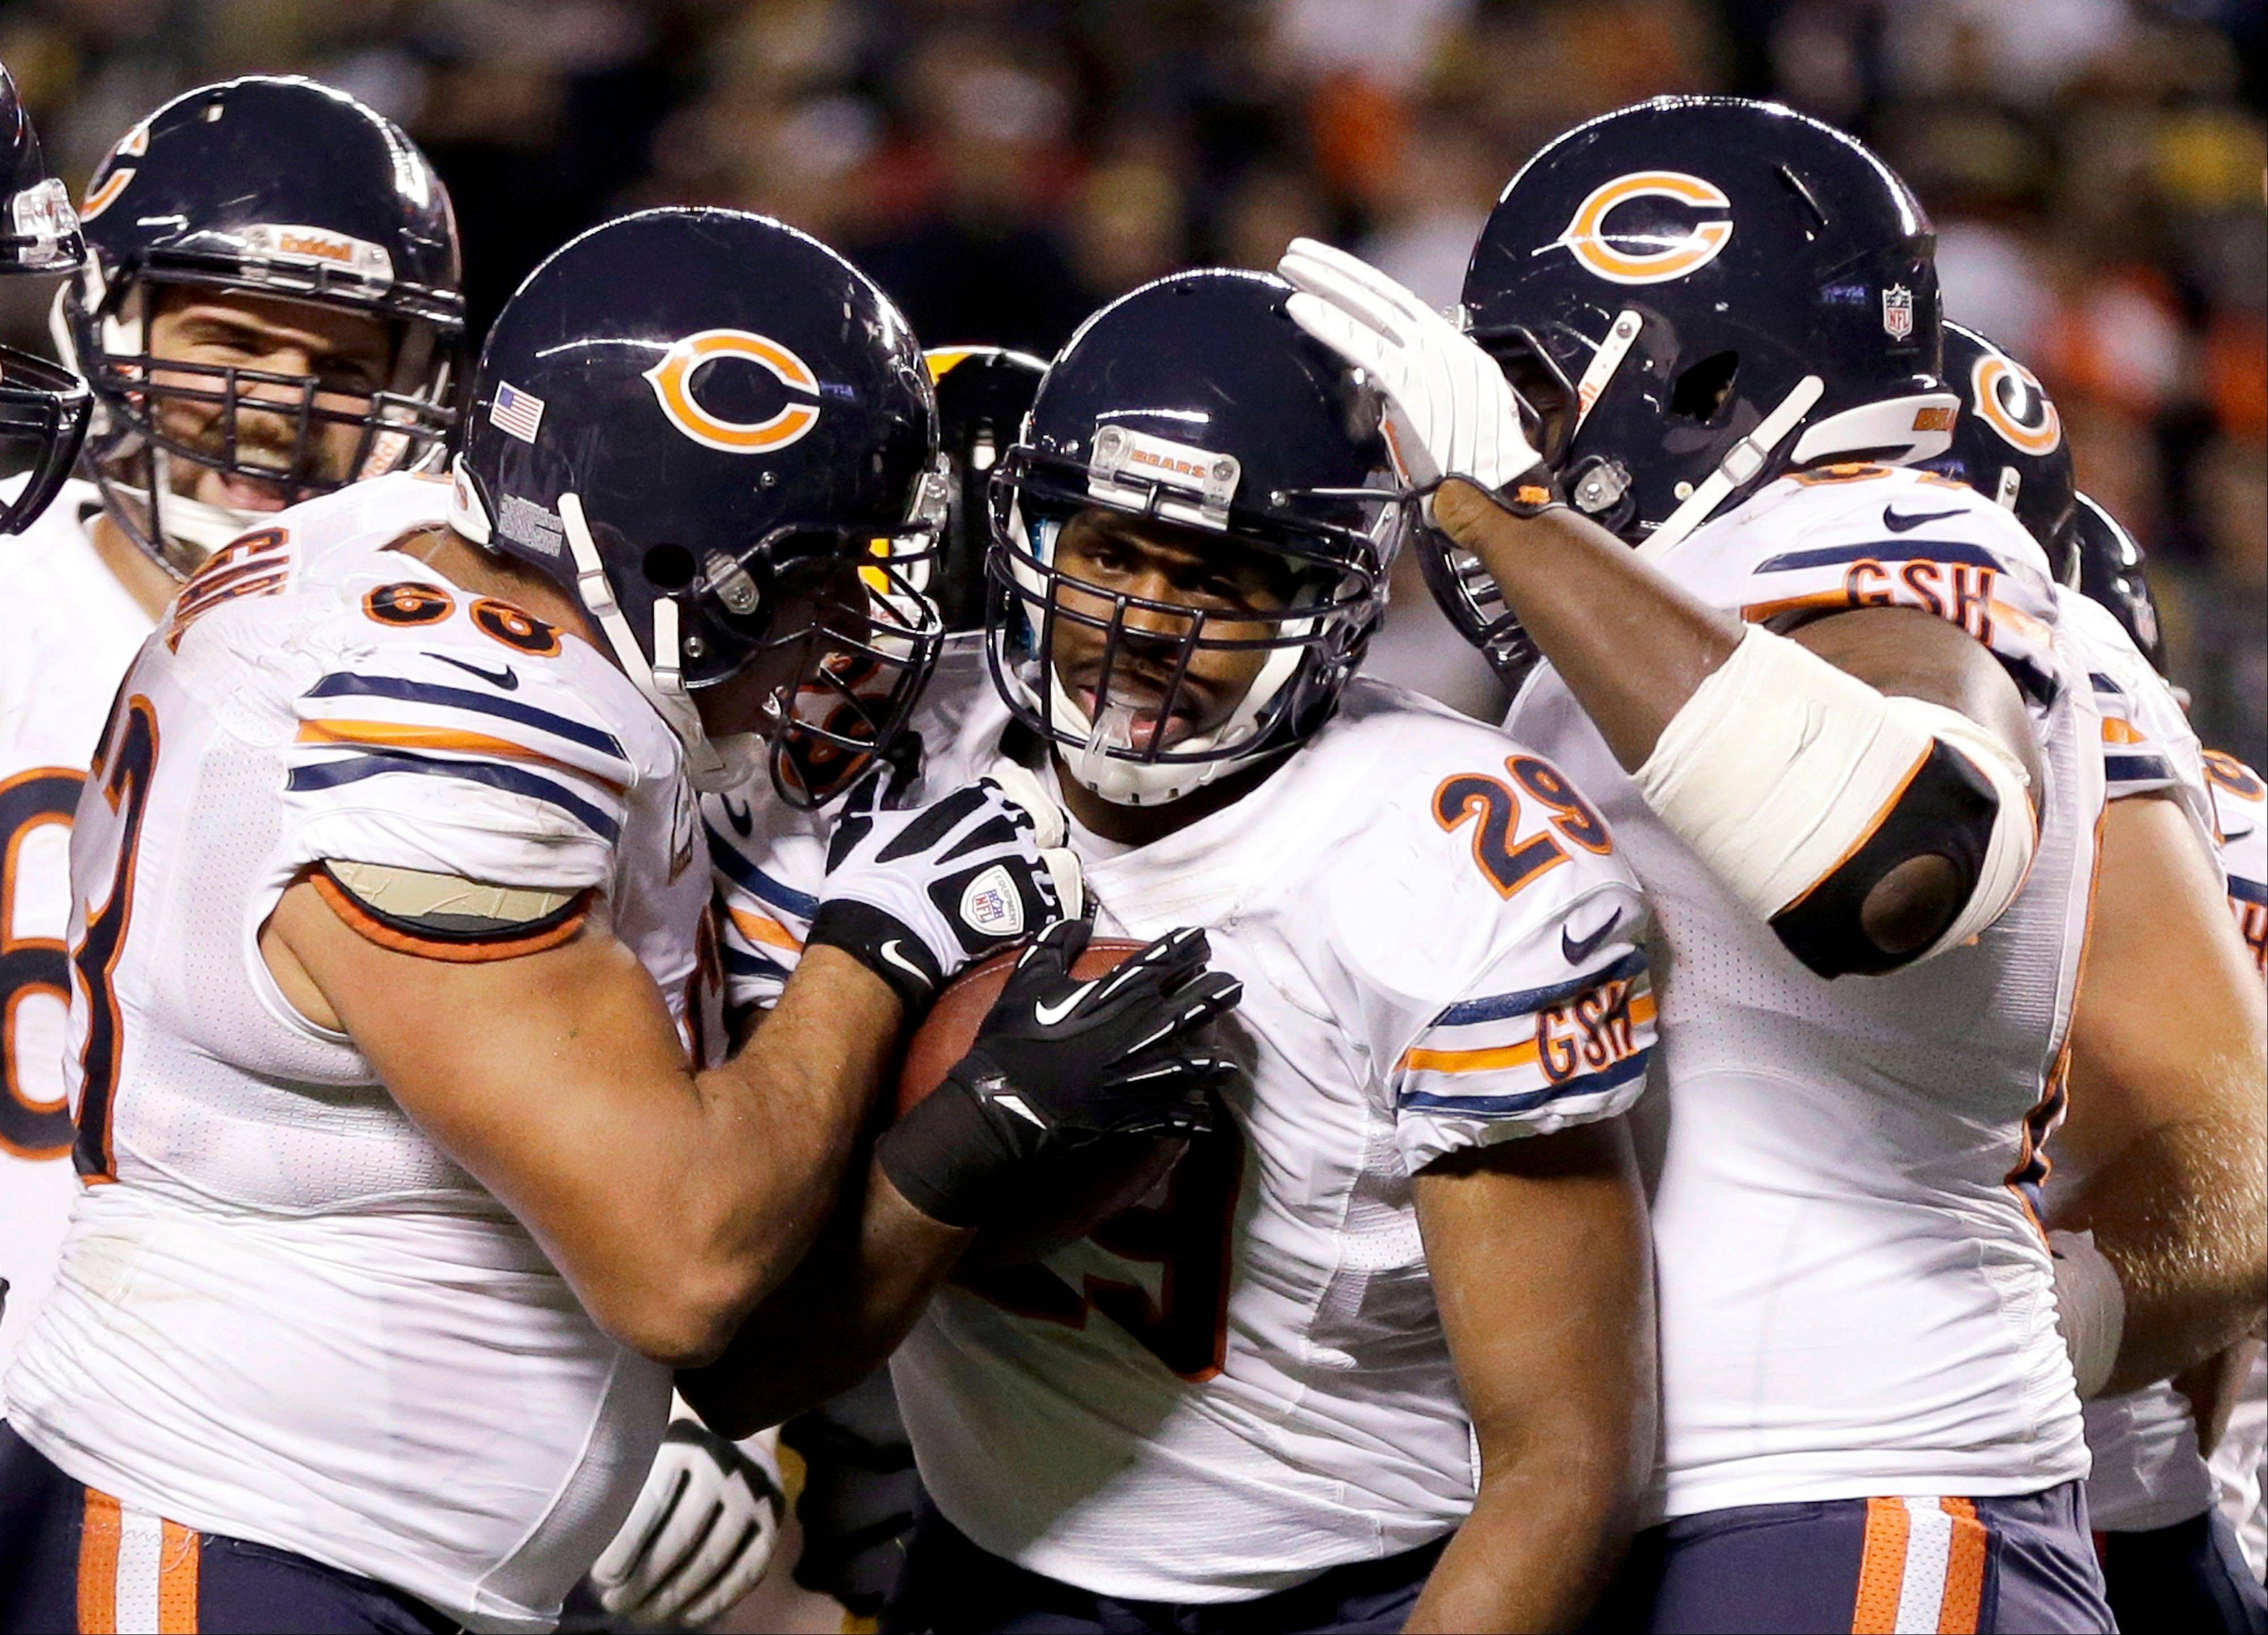 Bears running back Michael Bush (29) celebrates scoring a touchdown with teammates in the first quarter of an NFL football game against the Pittsburgh Steelers in Pittsburgh, Sunday, Sept. 22, 2013.